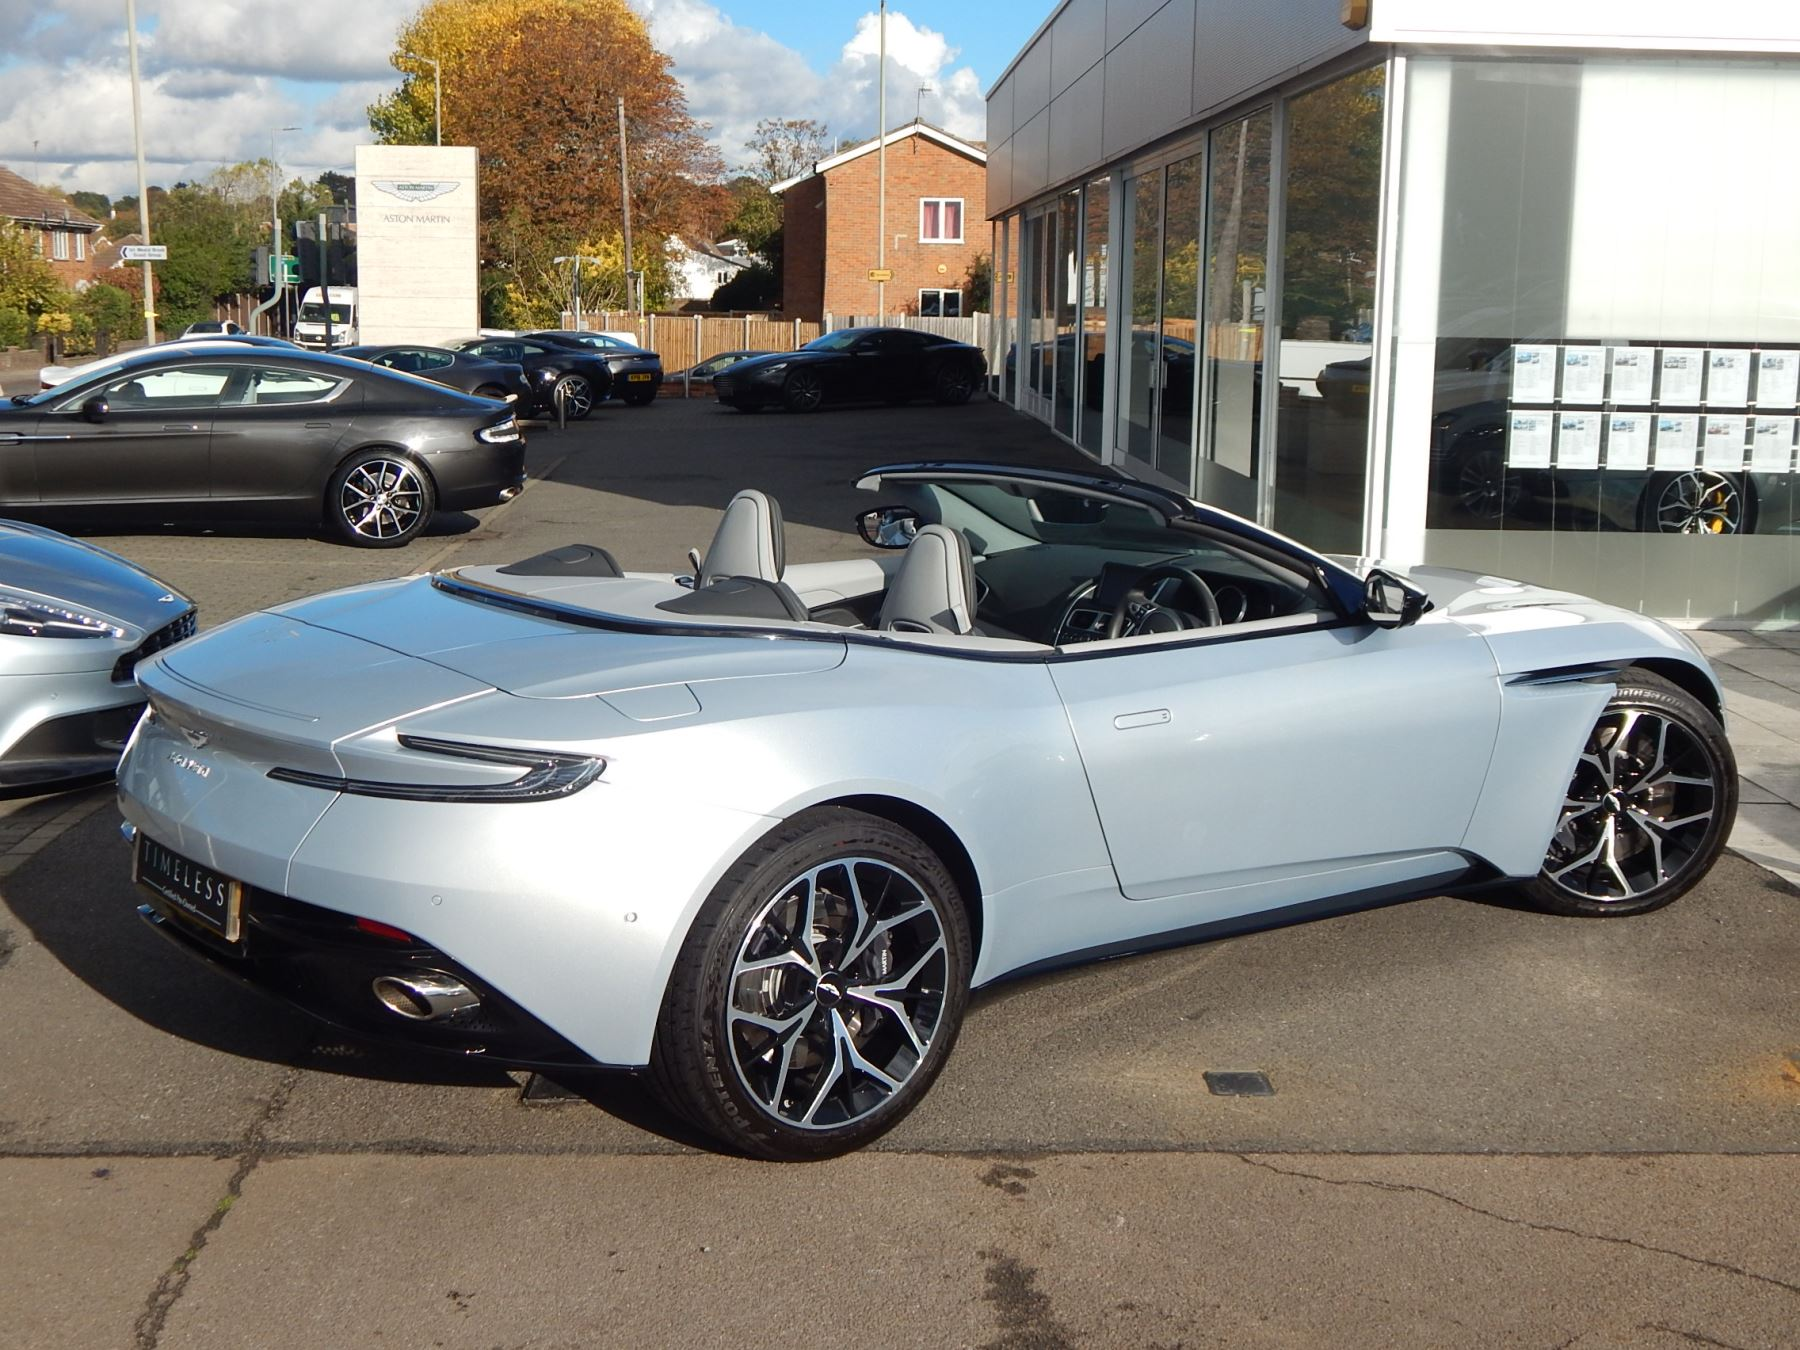 Aston Martin DB11 Volante 4.0 V8 Twin Turbo image 23